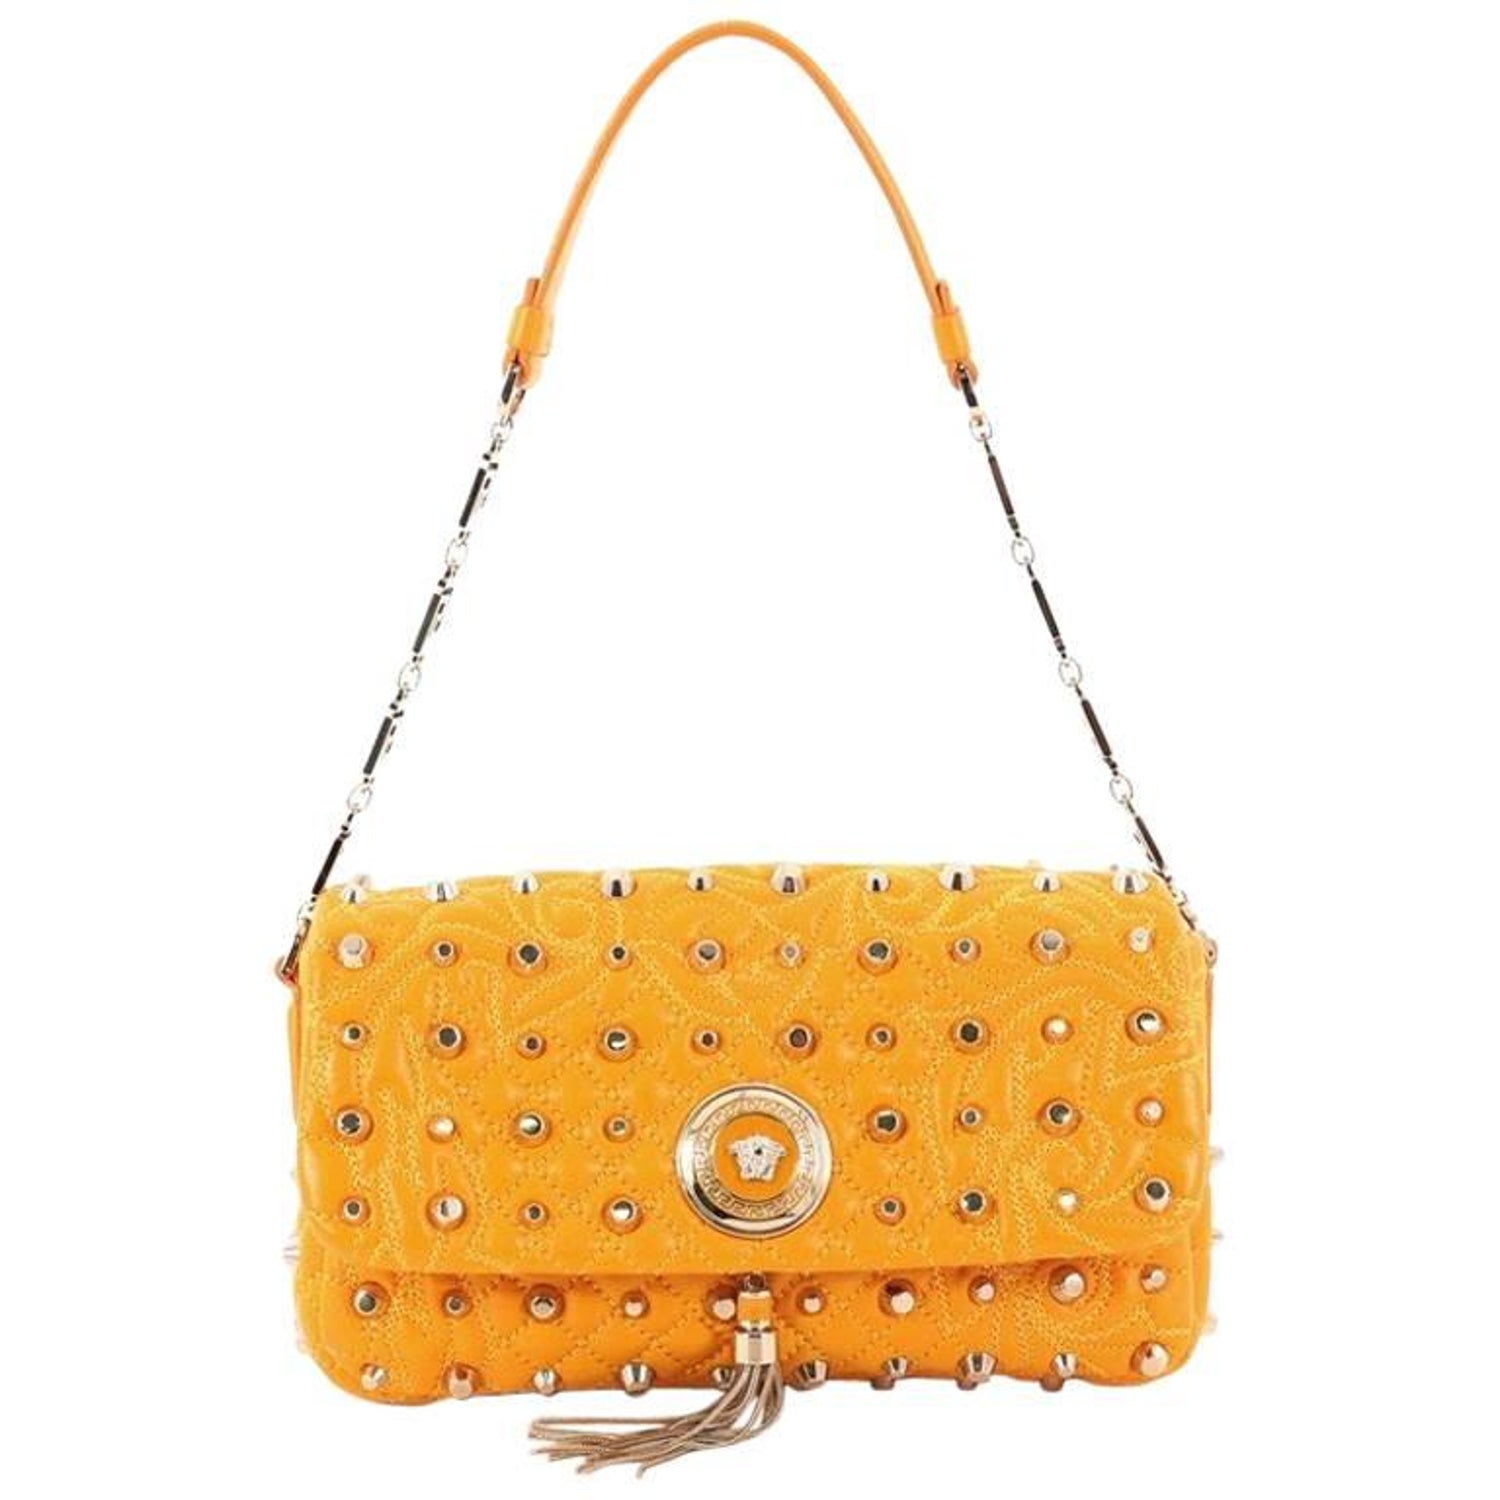 8cdfd0e6d5 Versace Vanitas Medea Flap Bag Studded Barocco Leather at 1stdibs